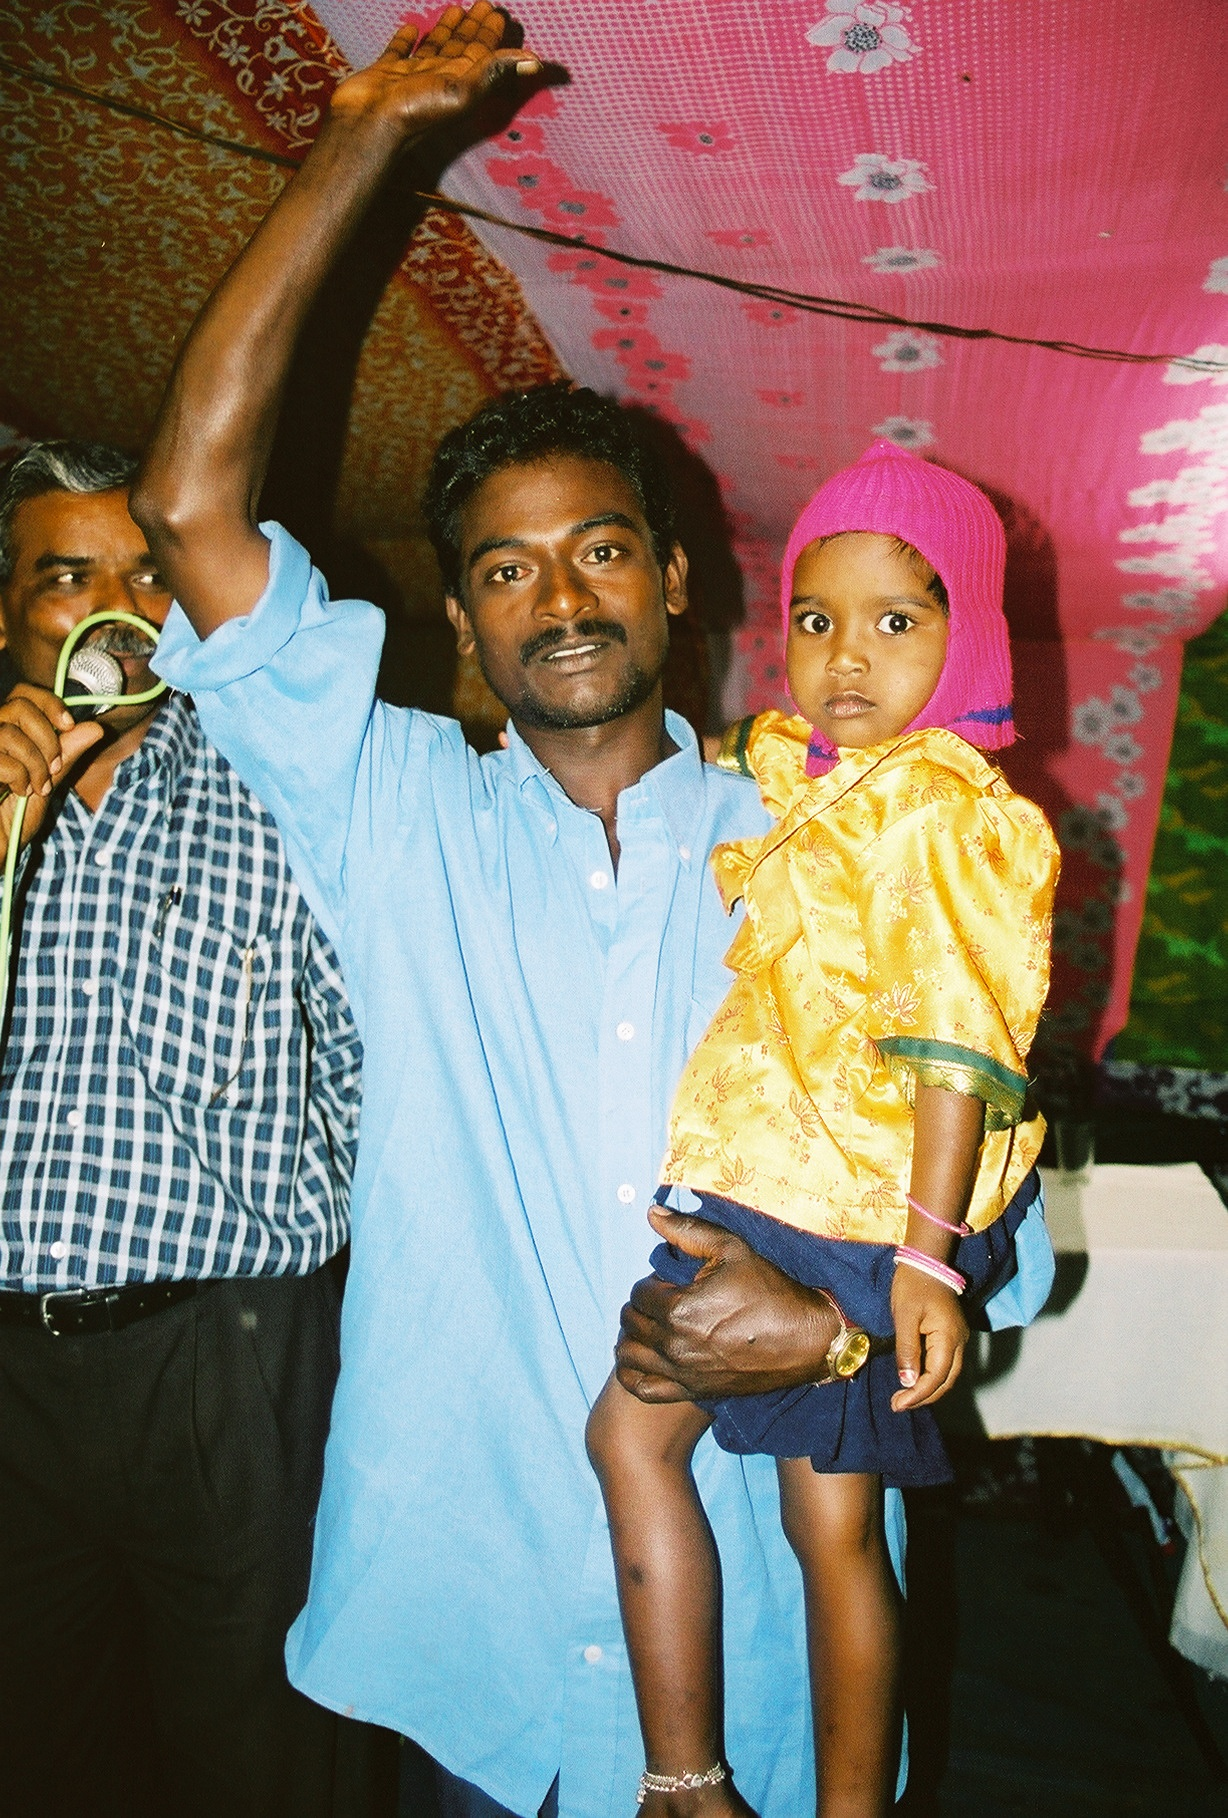 This man had many years of back pain but was healed in a crusade in India.